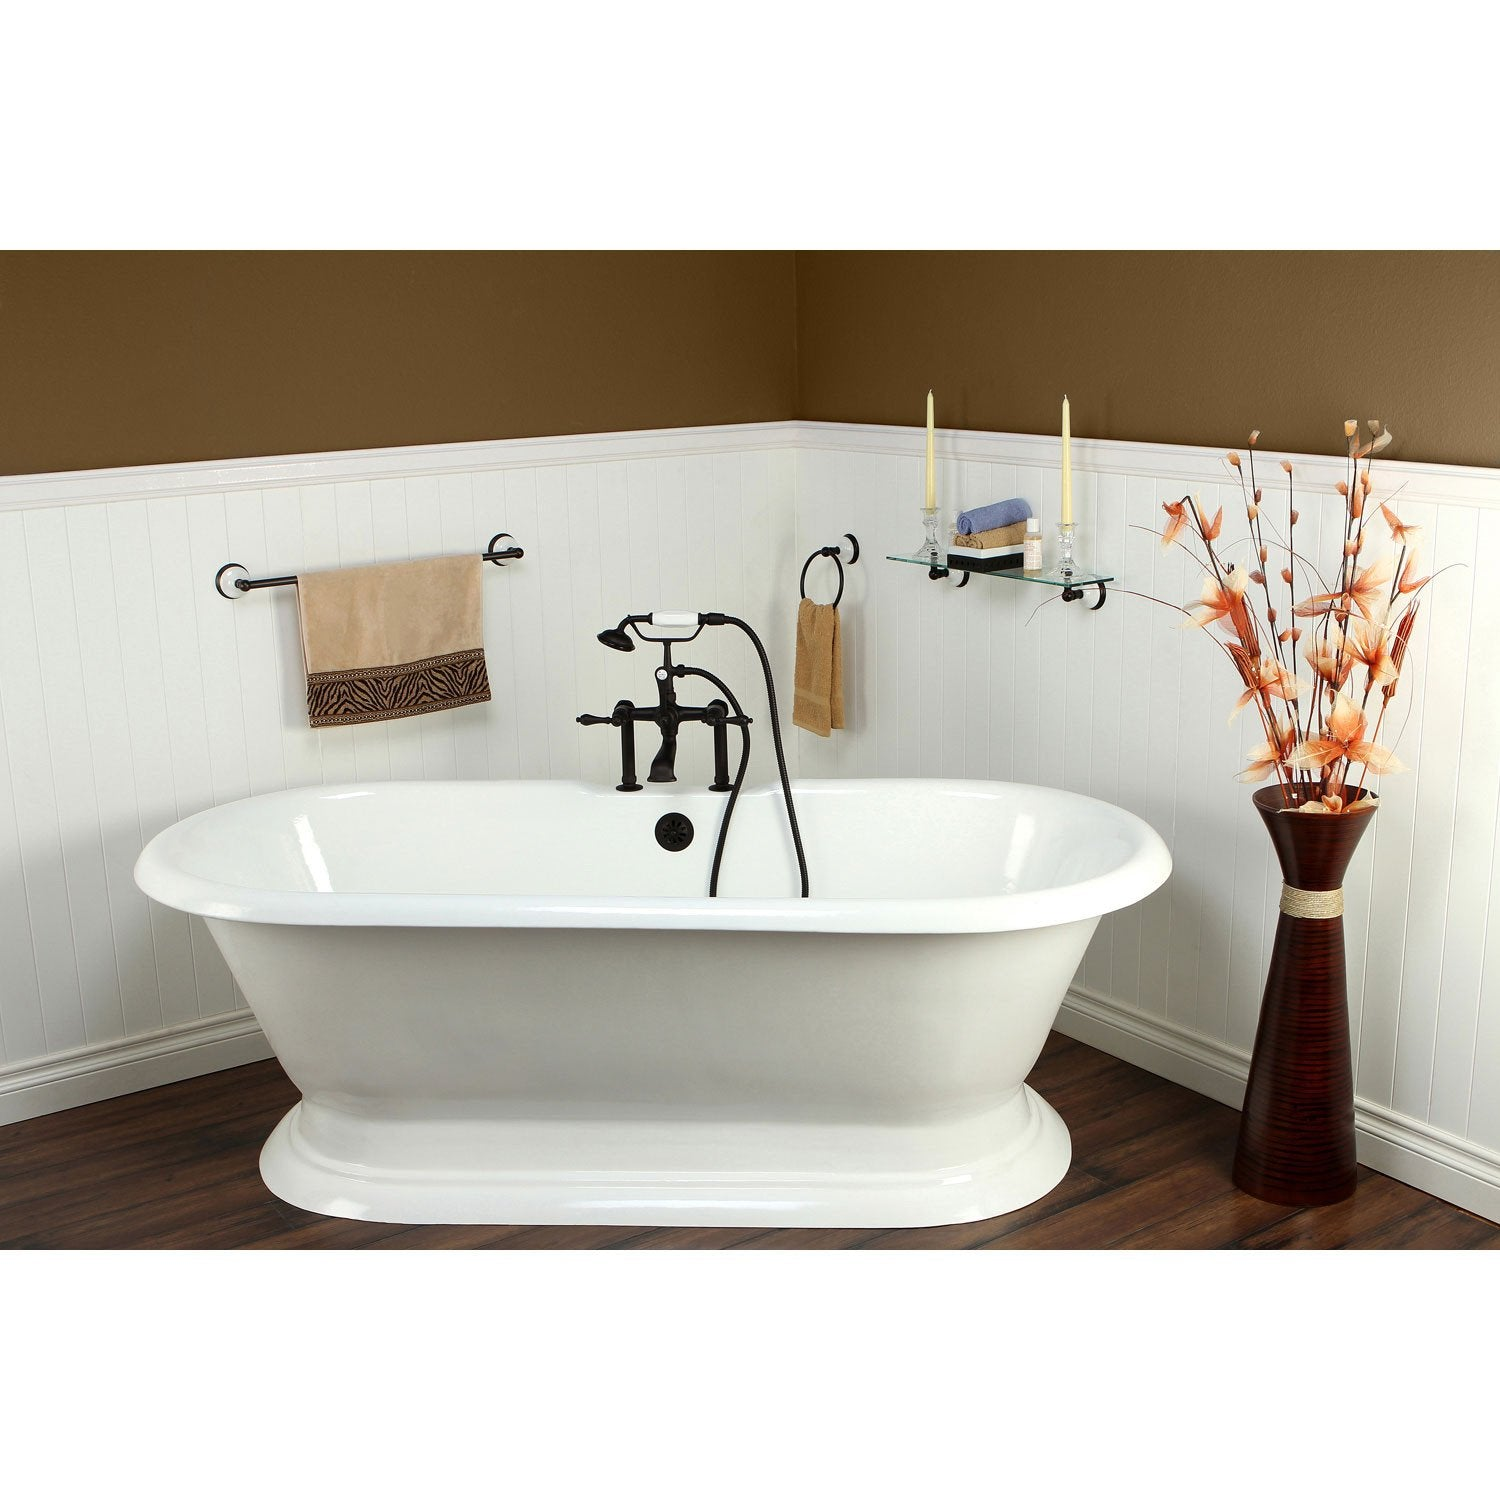 "72"" Freestanding Tub with Oil Rubbed Bronze Tub Faucet & Hardware Package CTP27"